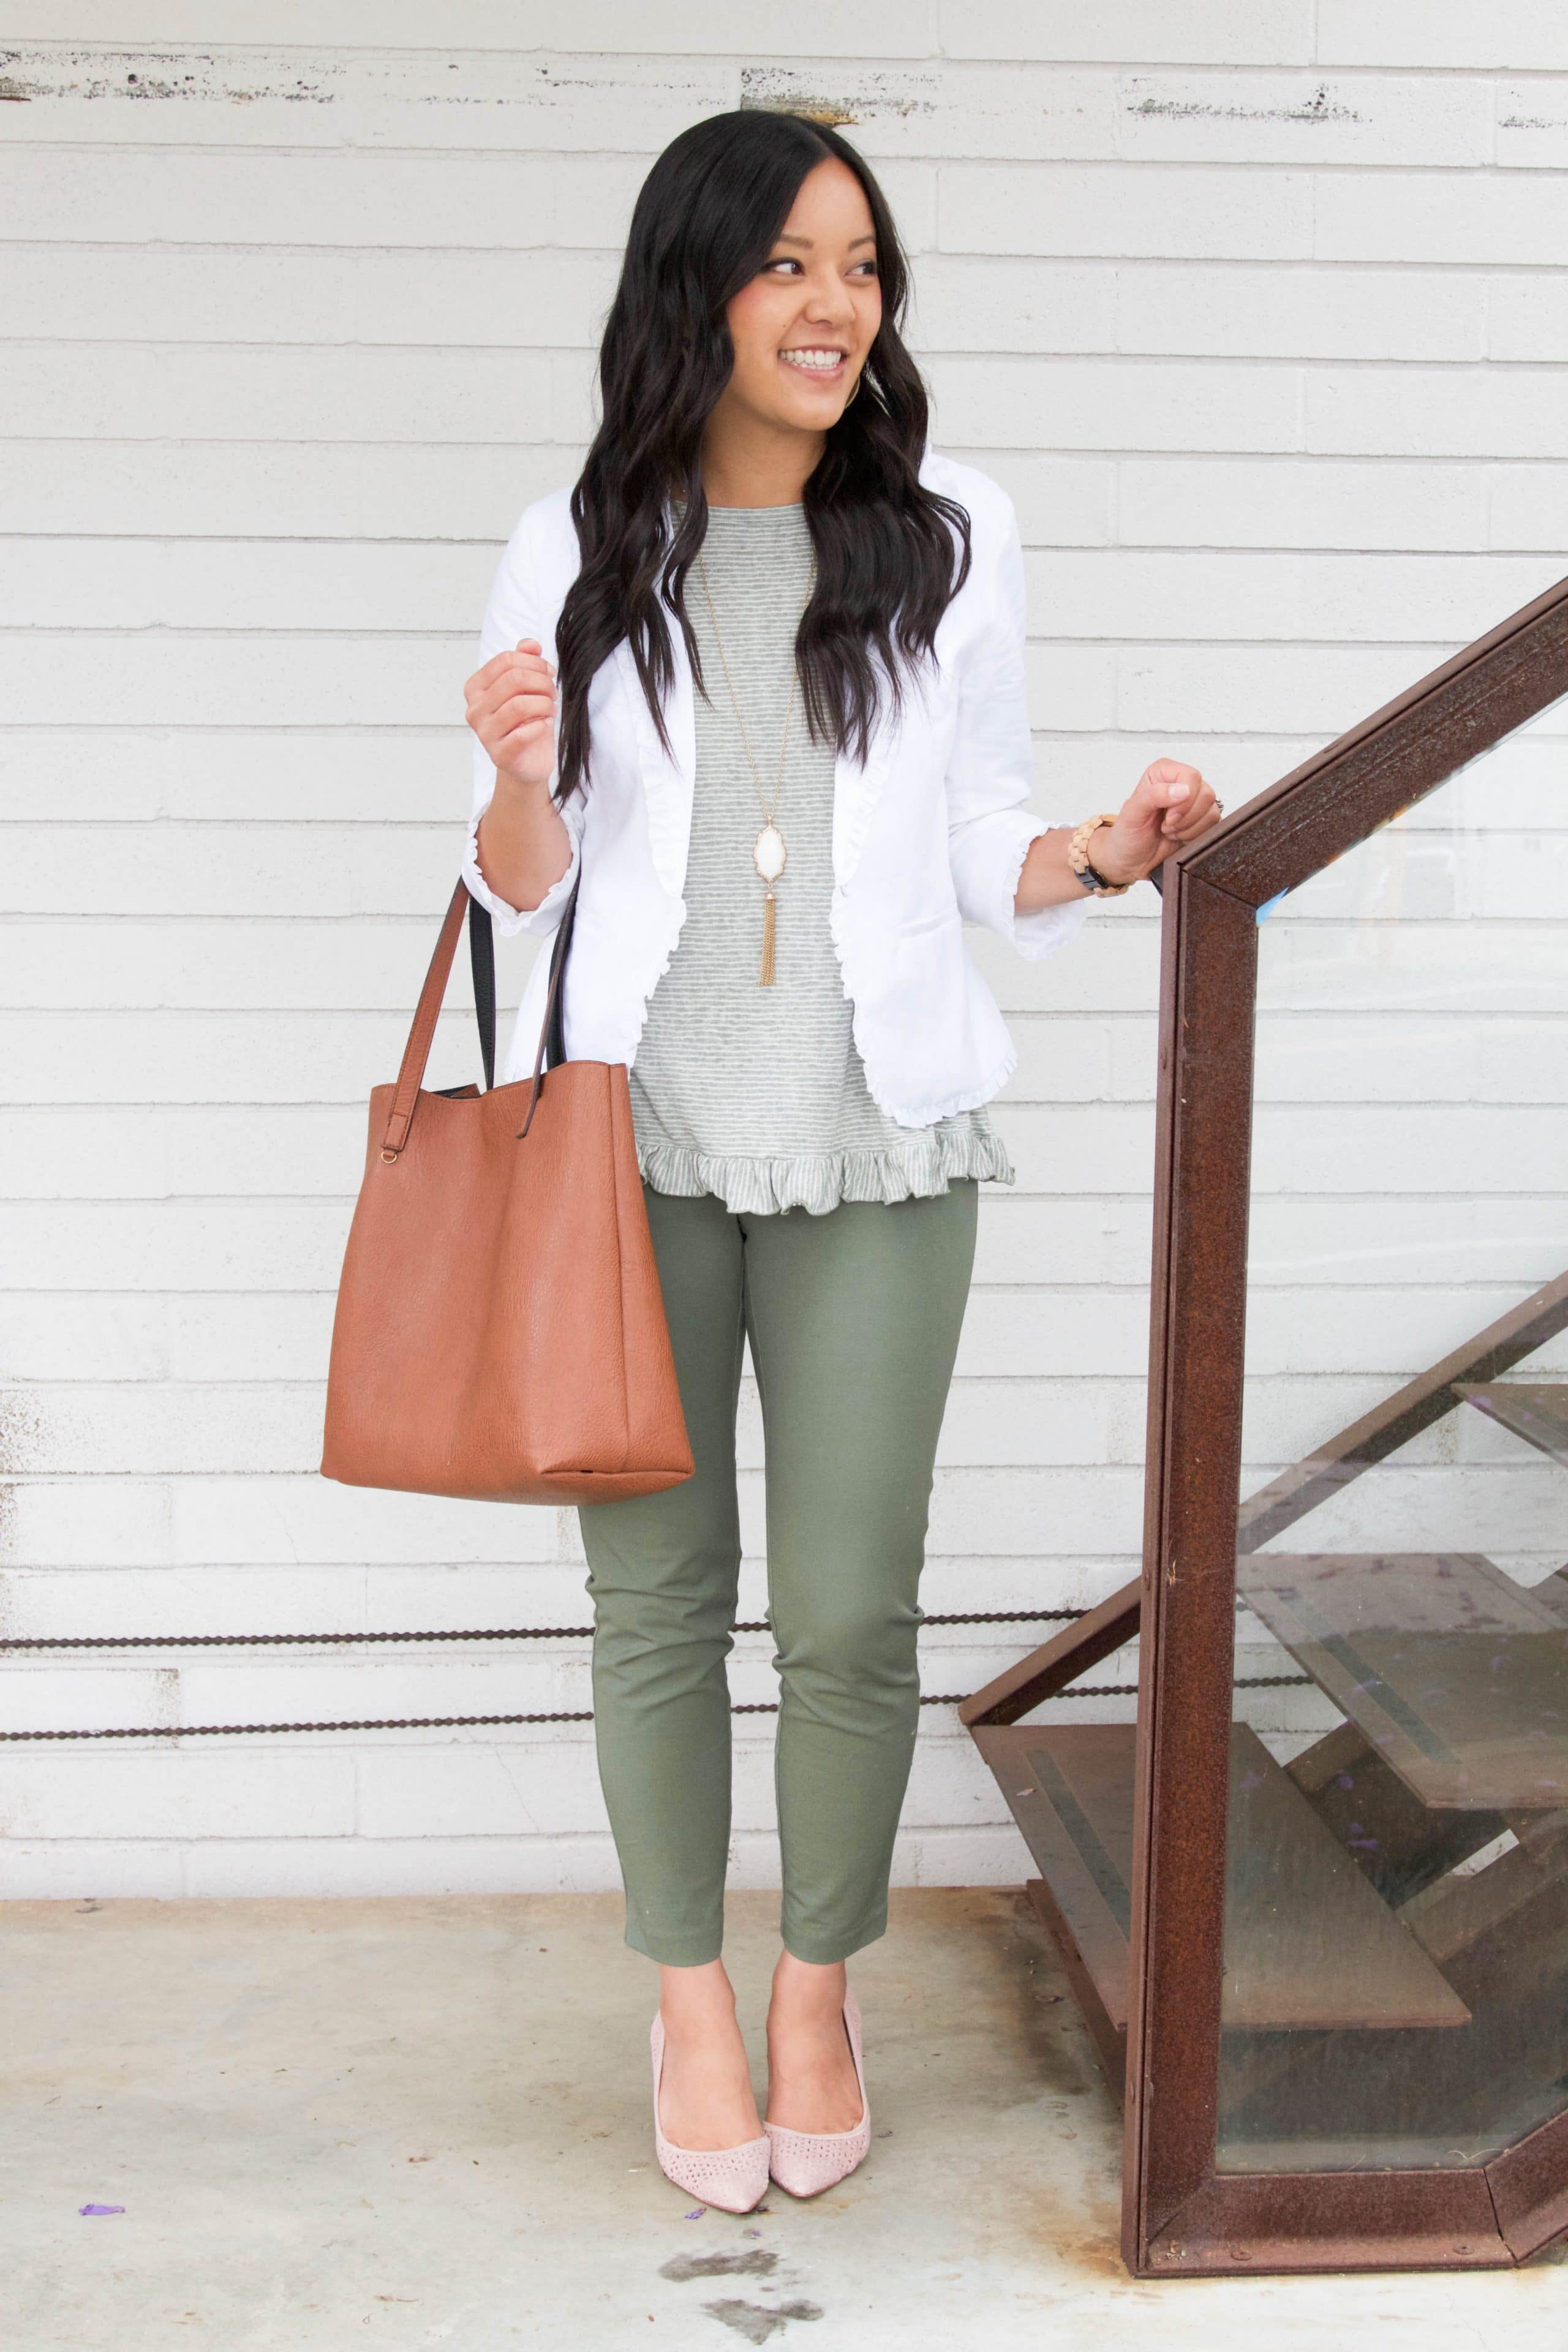 White Blazer + Olive Pants + Ruffle Top + Blush Pumps + White Necklace